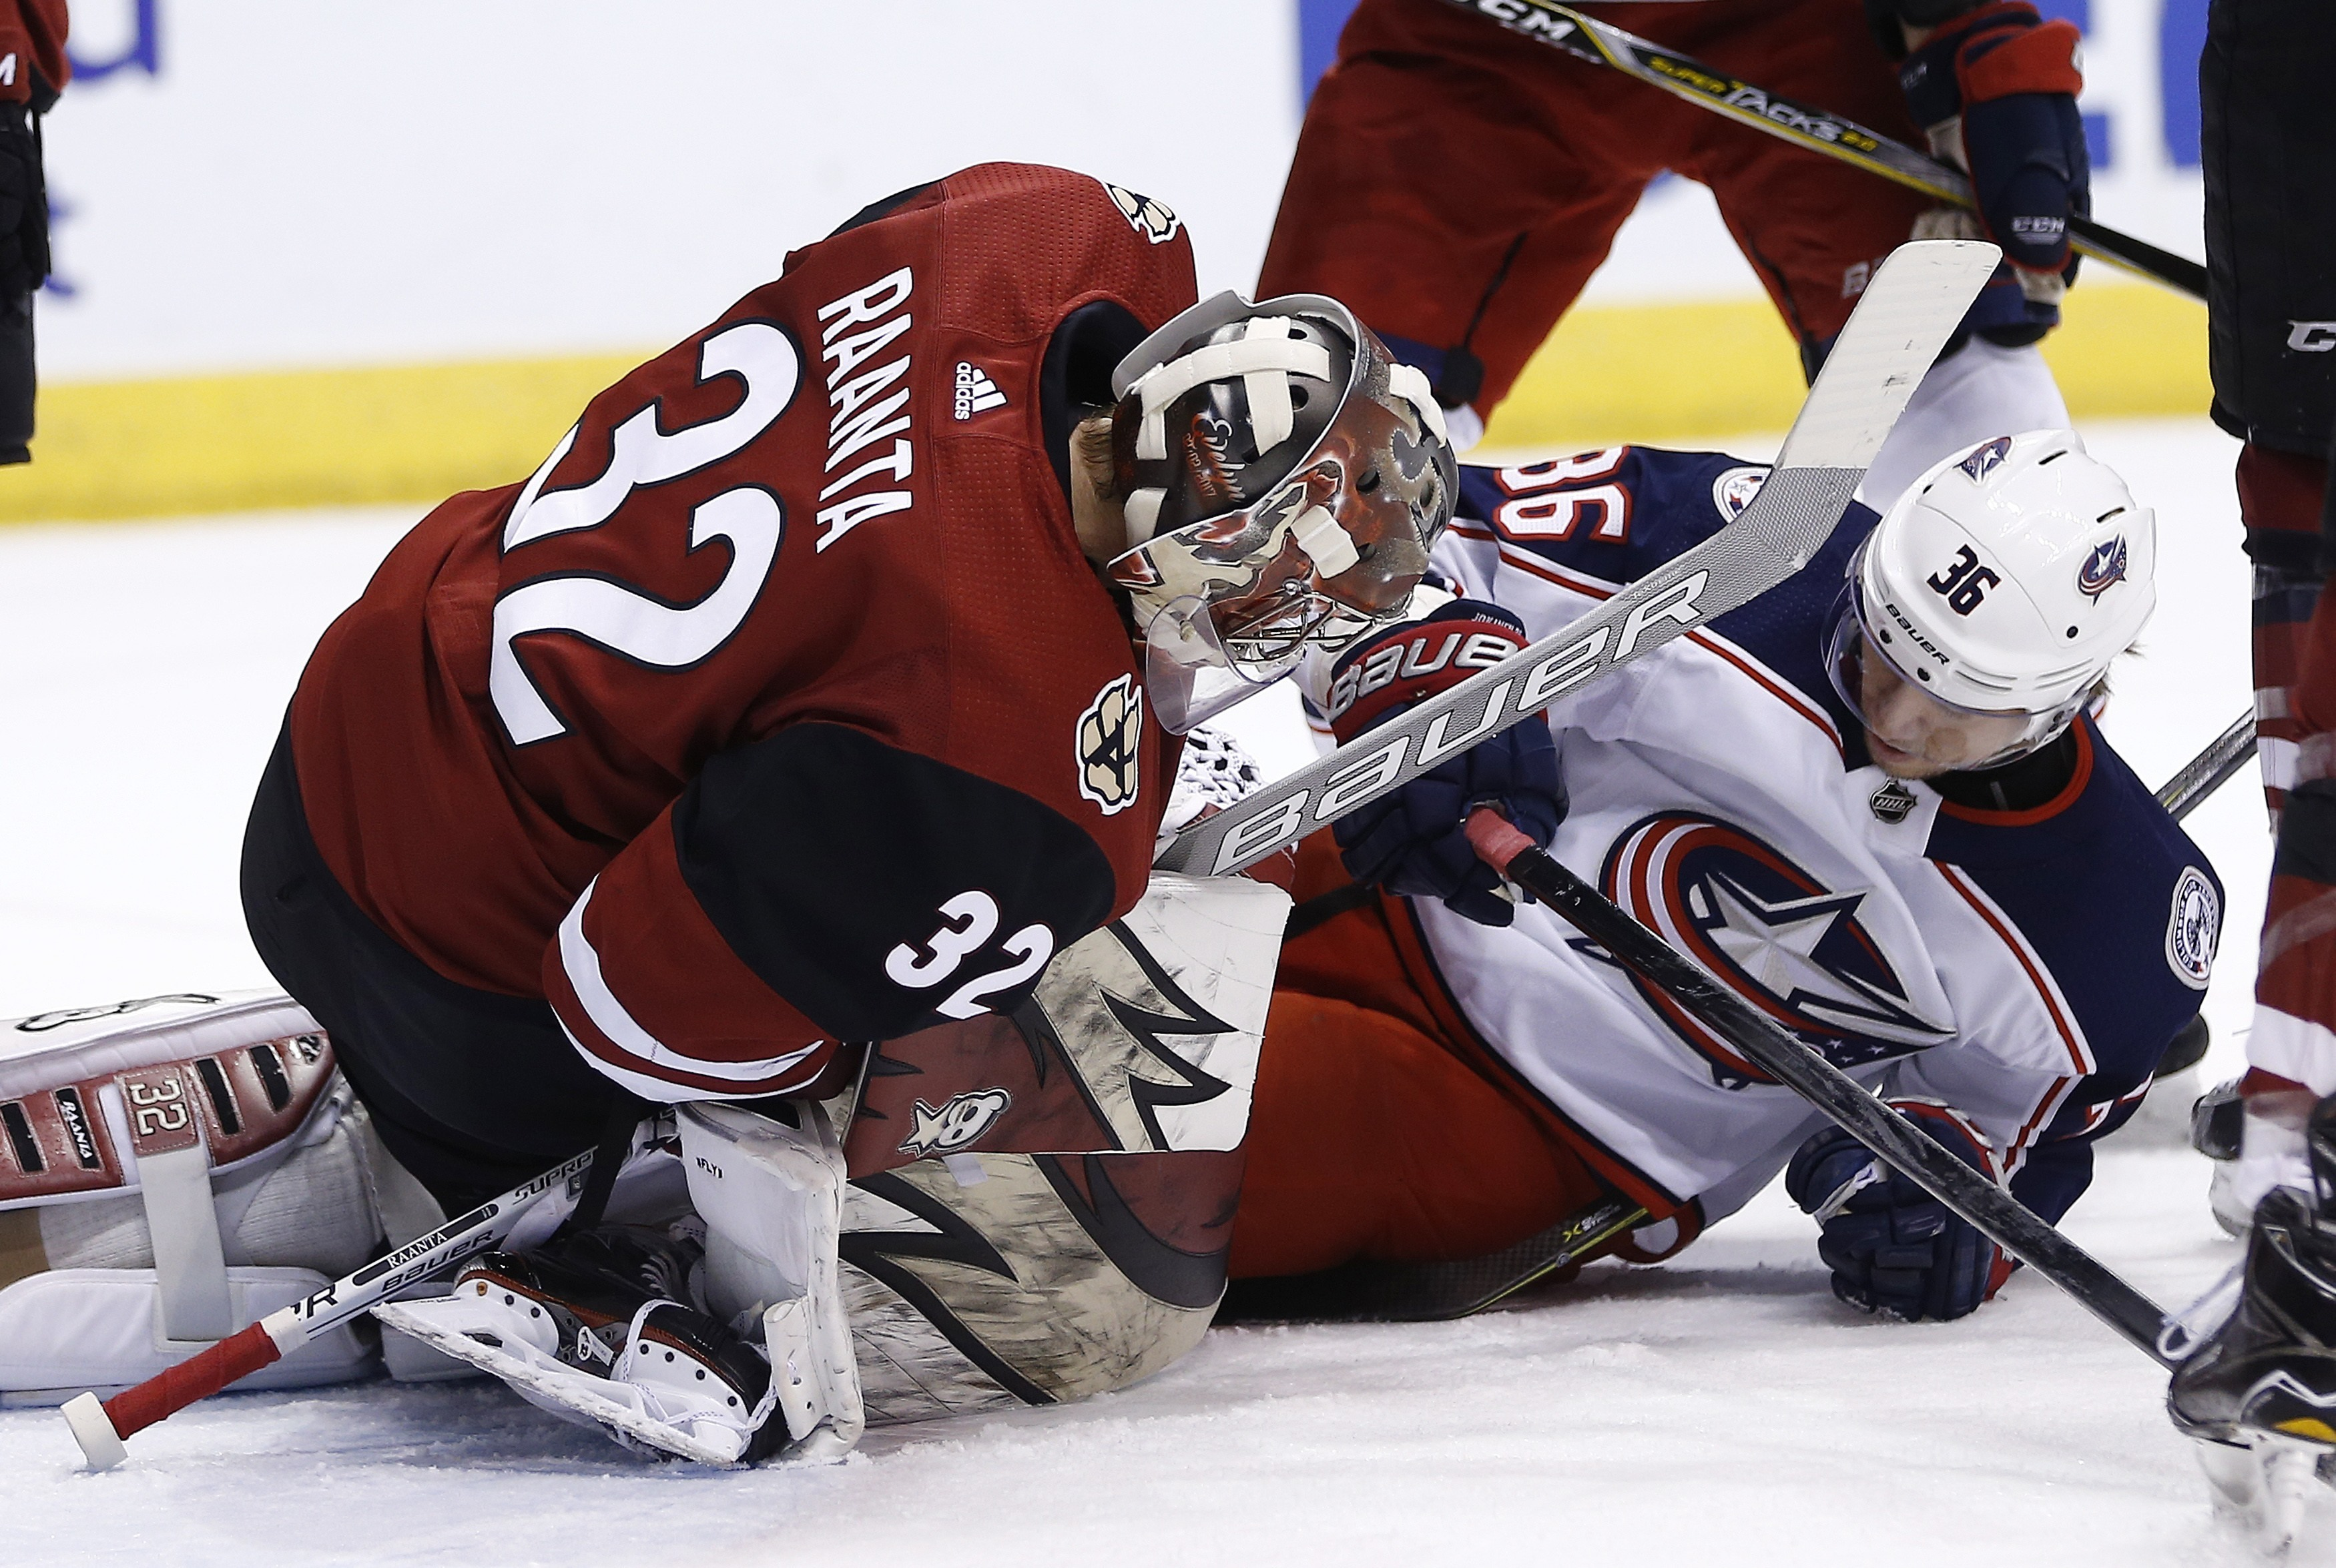 Arizona Coyotes goaltender Antti Raanta (32) makes a save as he collides with Columbus Blue Jackets left wing Jussi Jokinen (36) during the first period of an NHL hockey game, Thursday, Jan. 25, 2018, in Glendale, Ariz. (AP Photo/Ross D. Franklin)